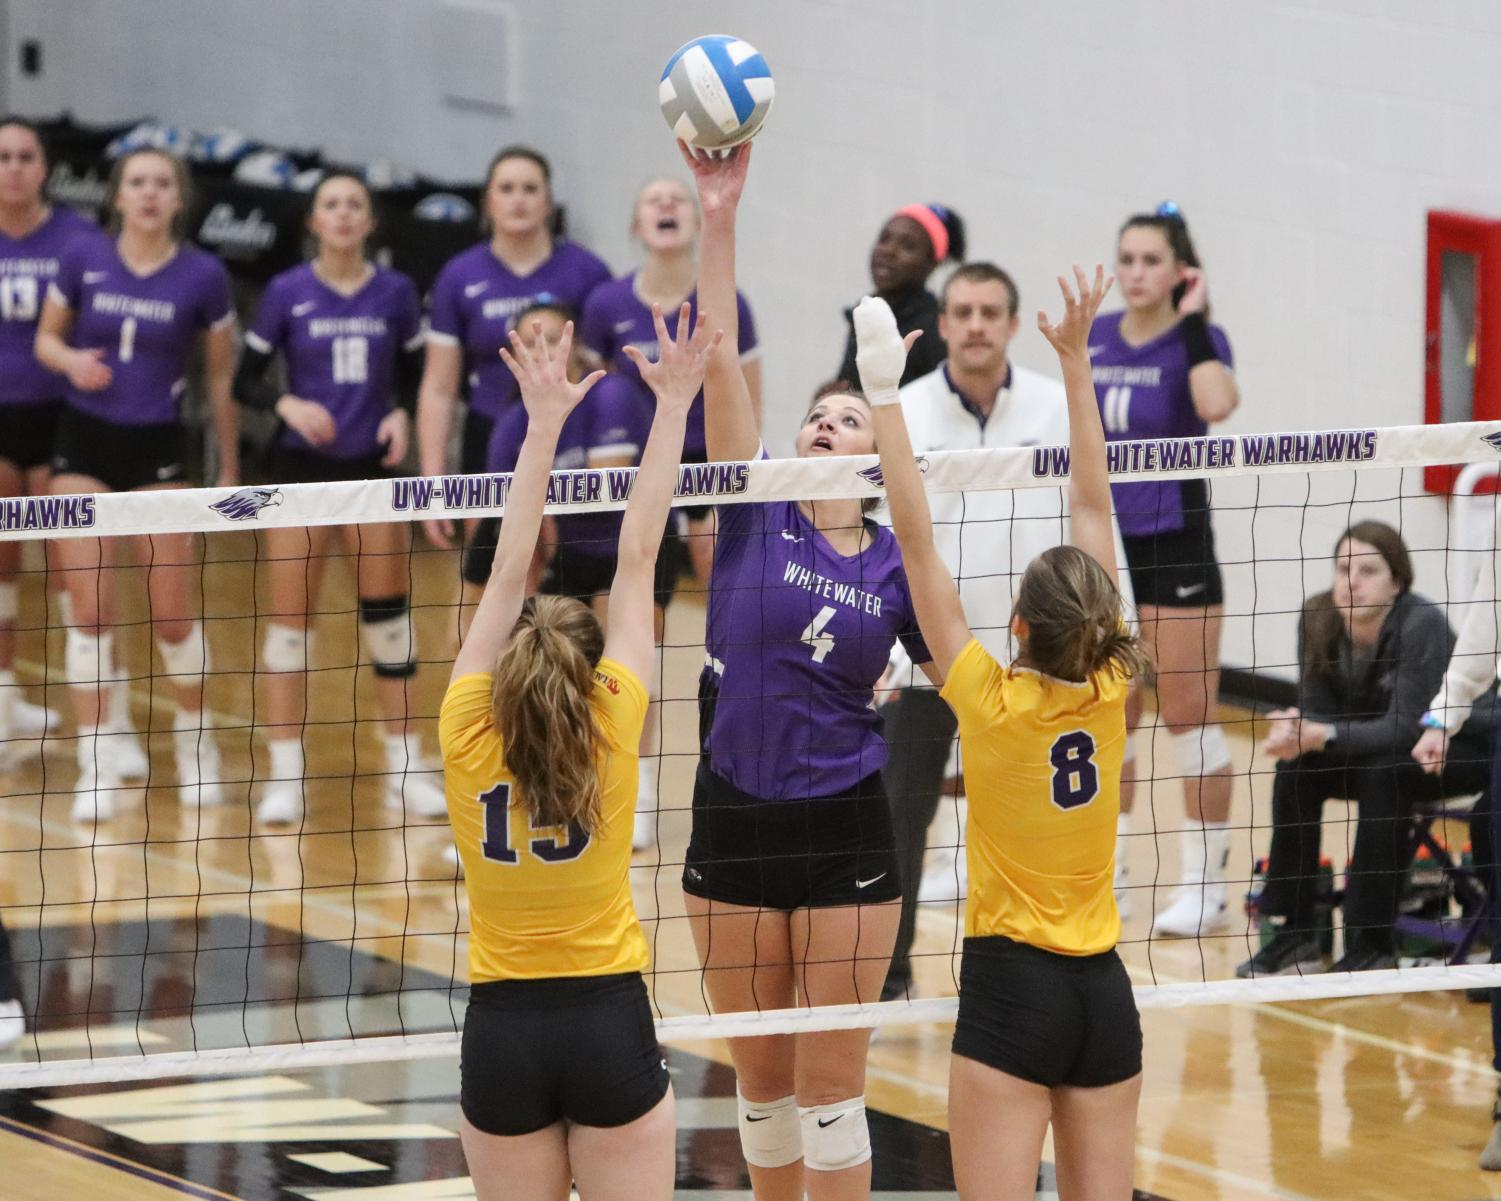 Erin McNeil splits the UWSP blockers during the first set.